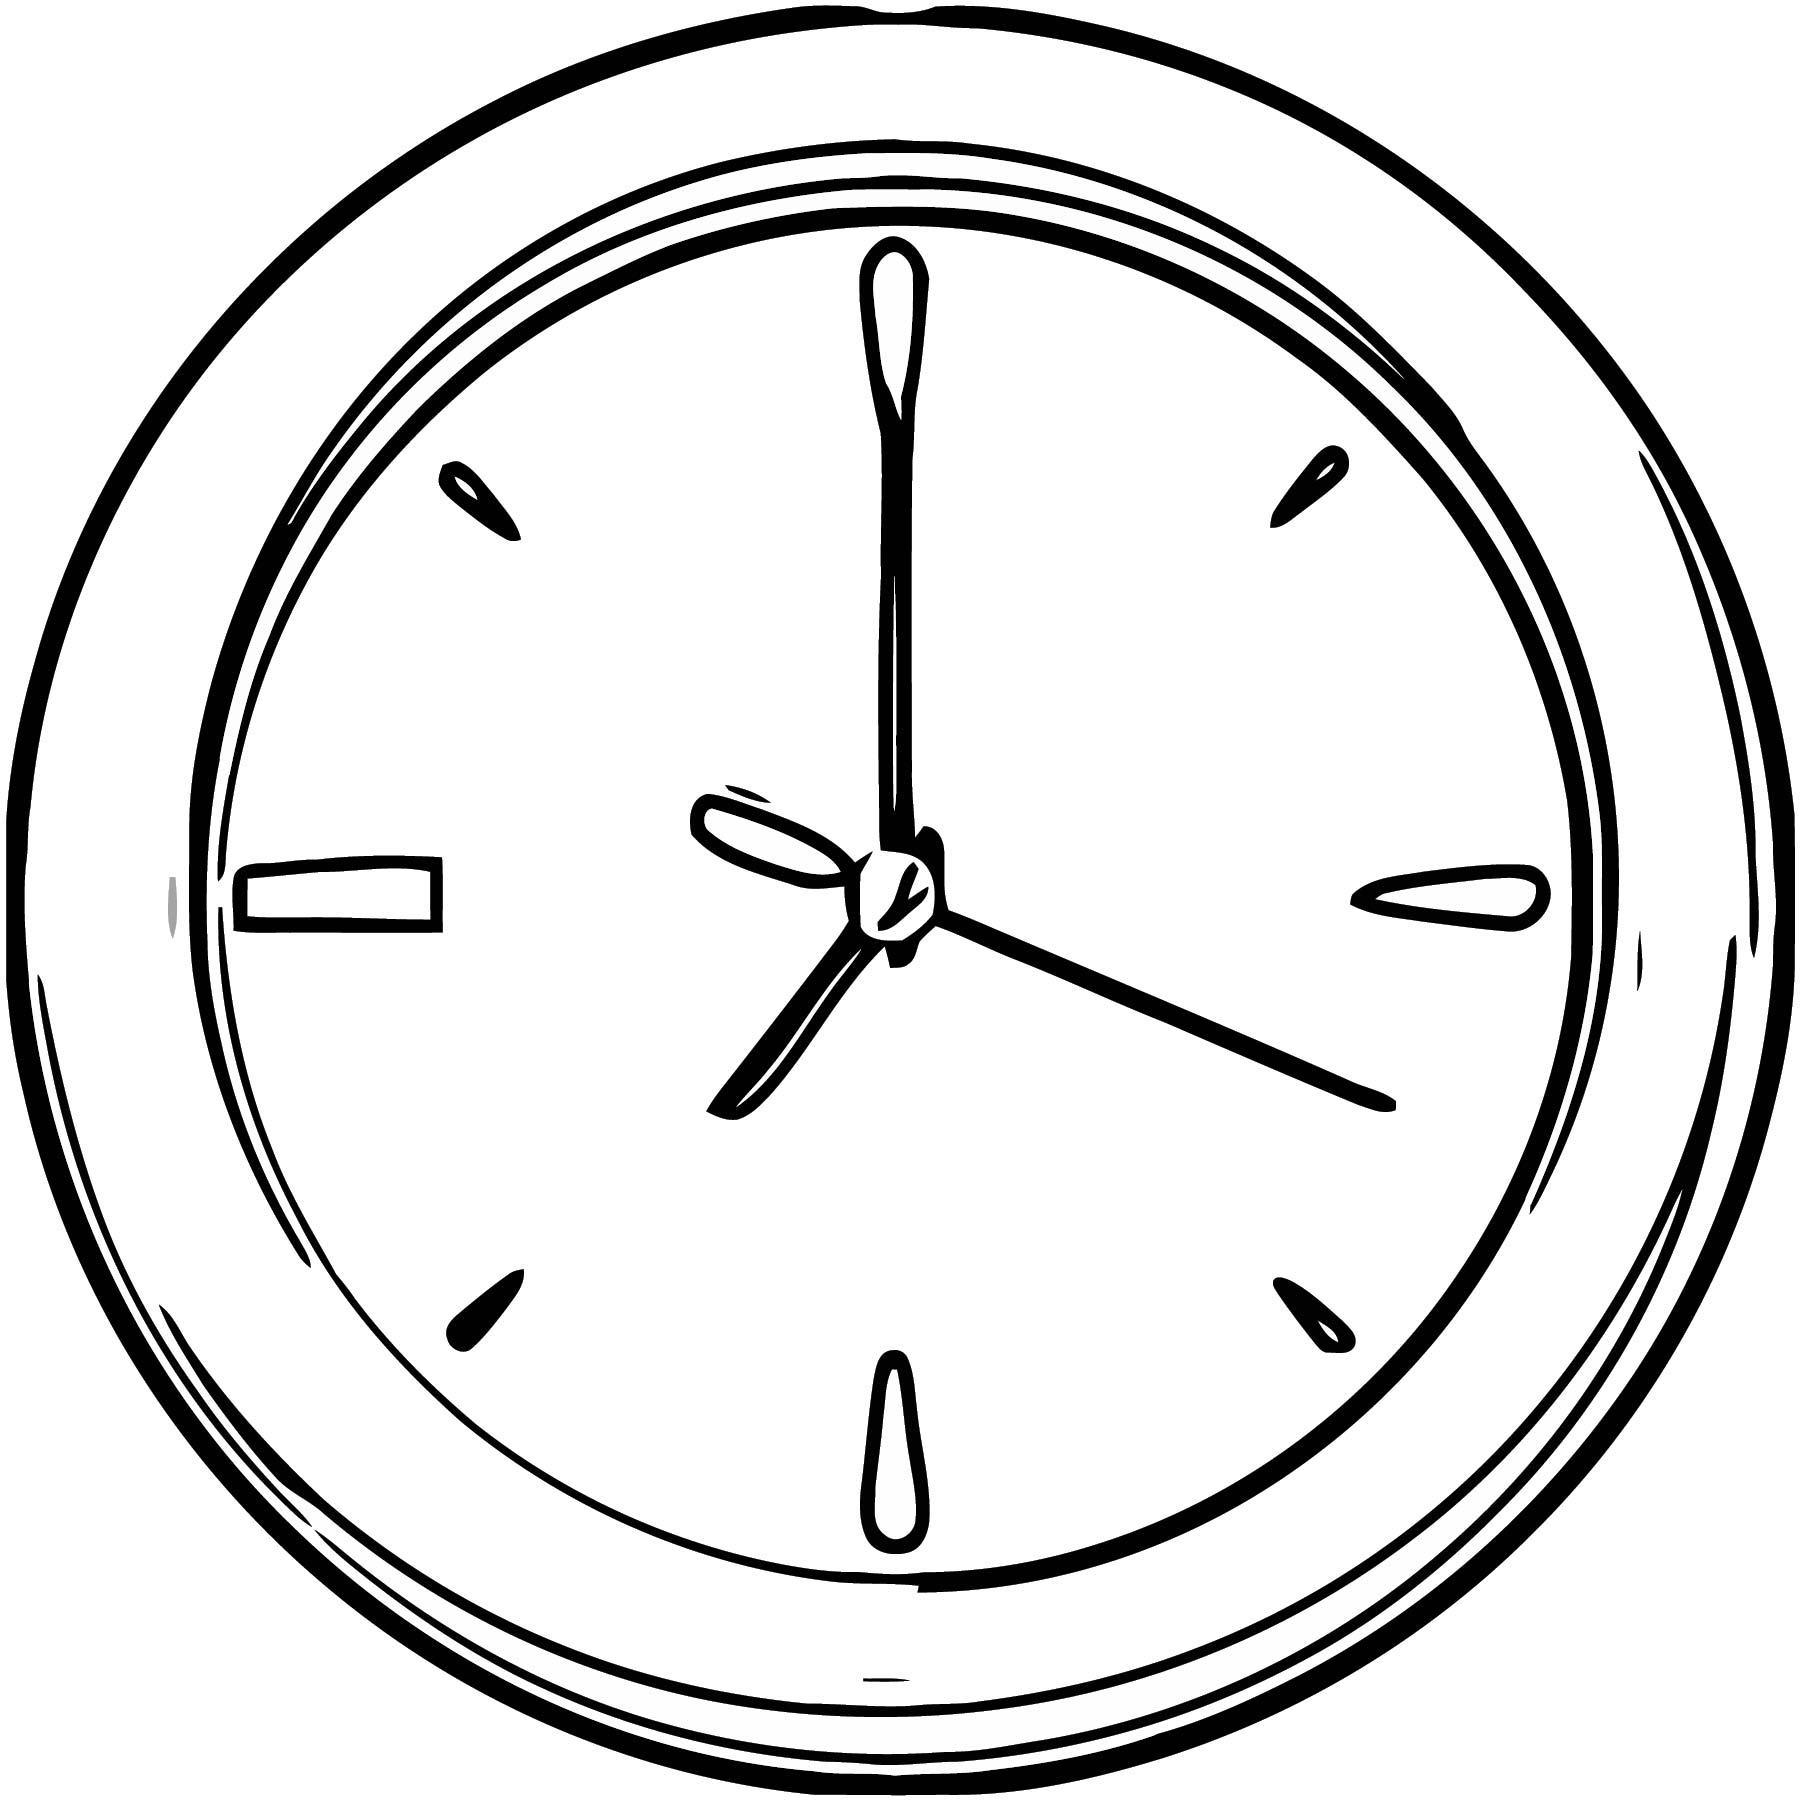 Wall Clock Free Printable 1 Cartoonized Free Printable Coloring Page